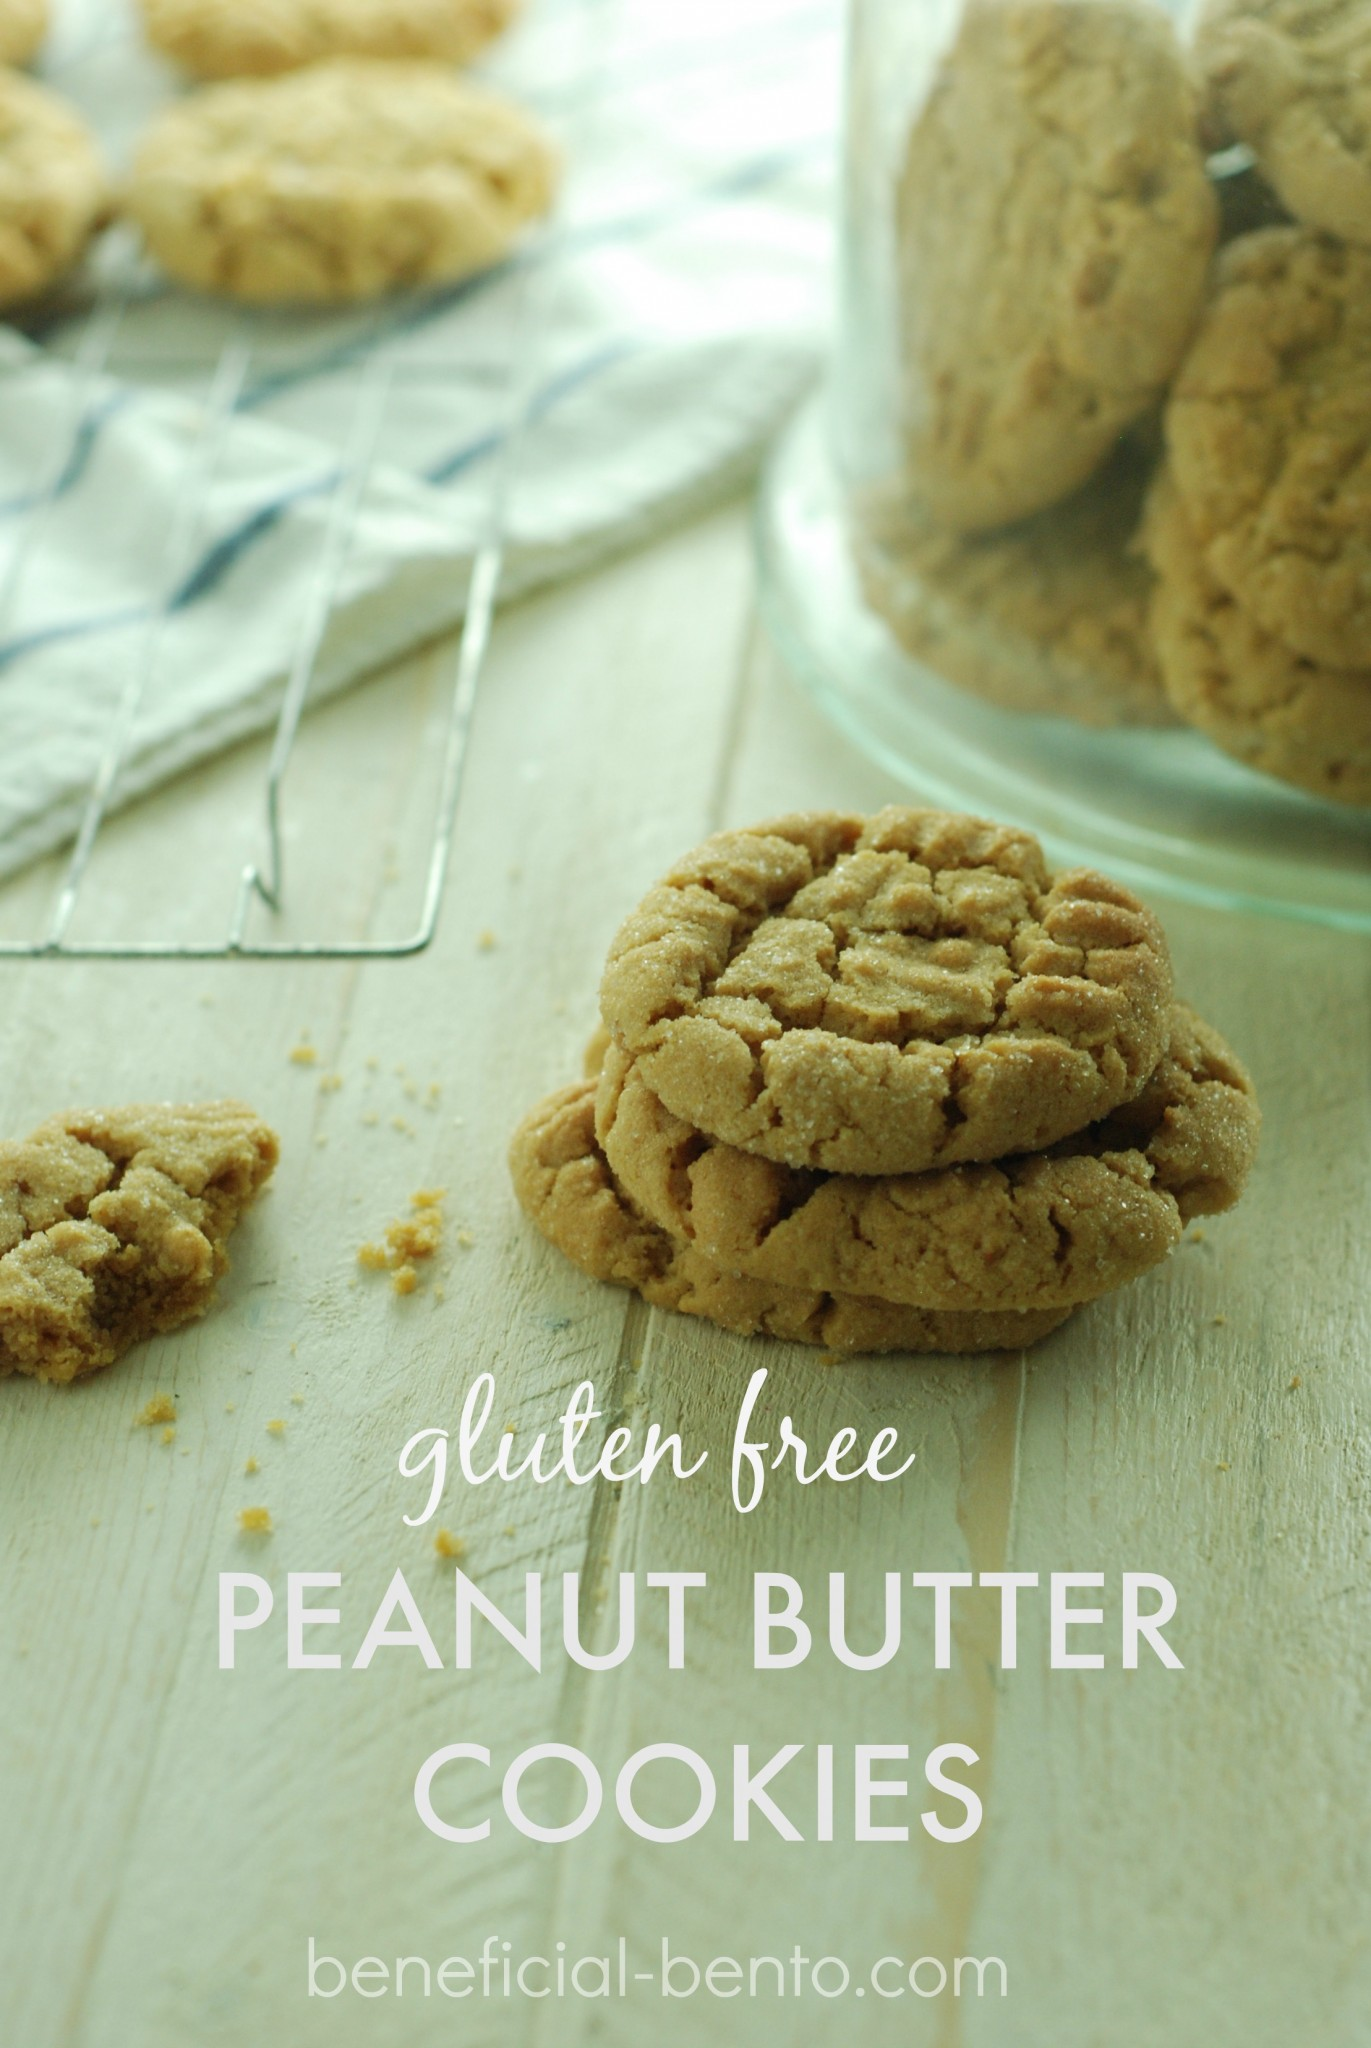 If you eat gluten free, you can still relive your childhood memories of having hot, chewy cookies fresh out of the oven with this old-fashioned recipe from Beneficial Bento